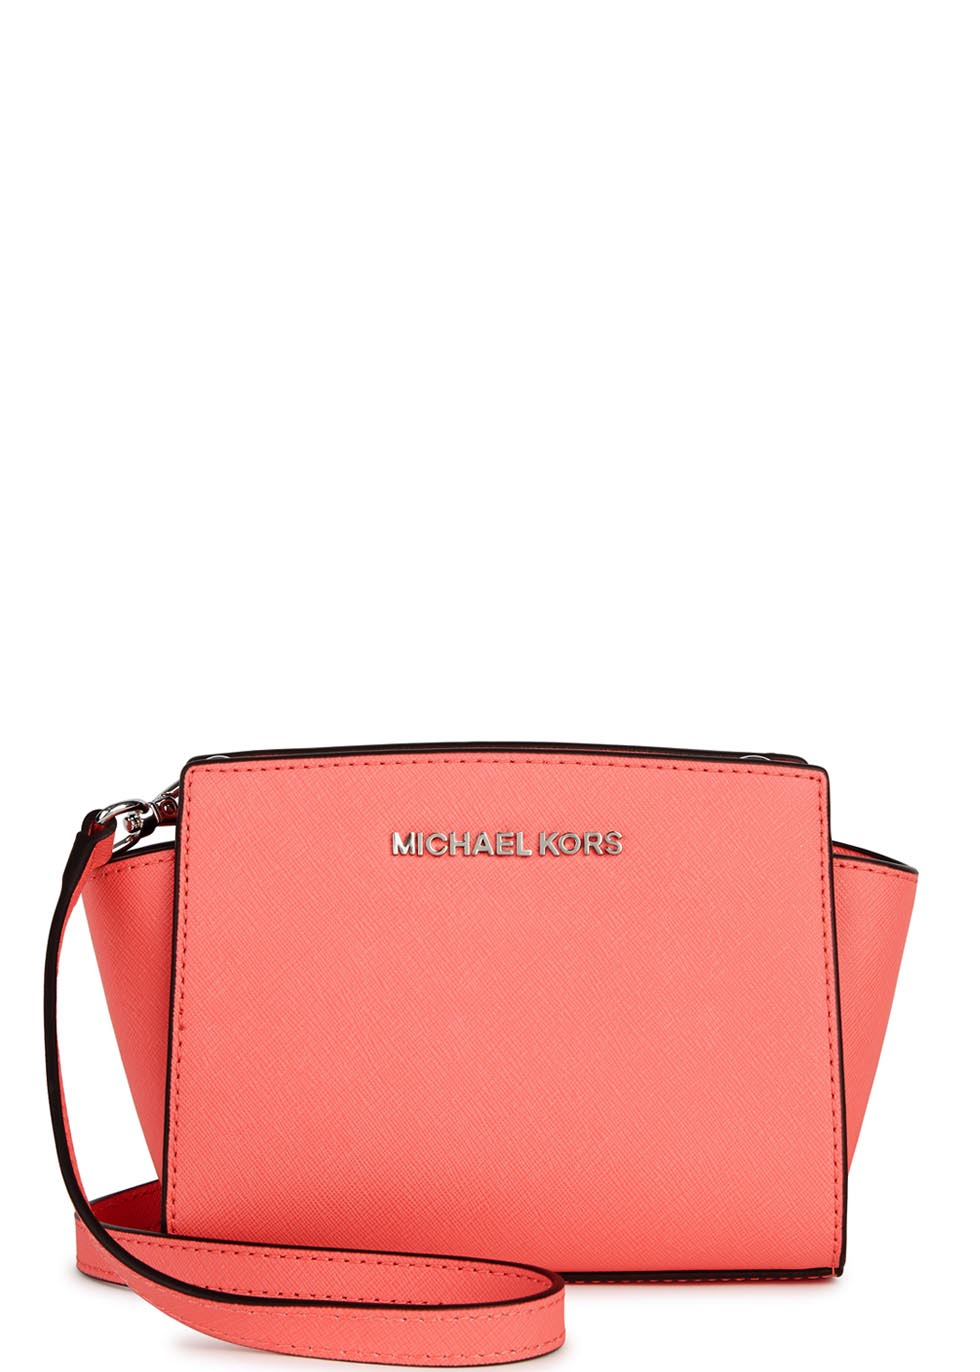 michael kors selma mini coral leather cross body bag in pink lyst. Black Bedroom Furniture Sets. Home Design Ideas